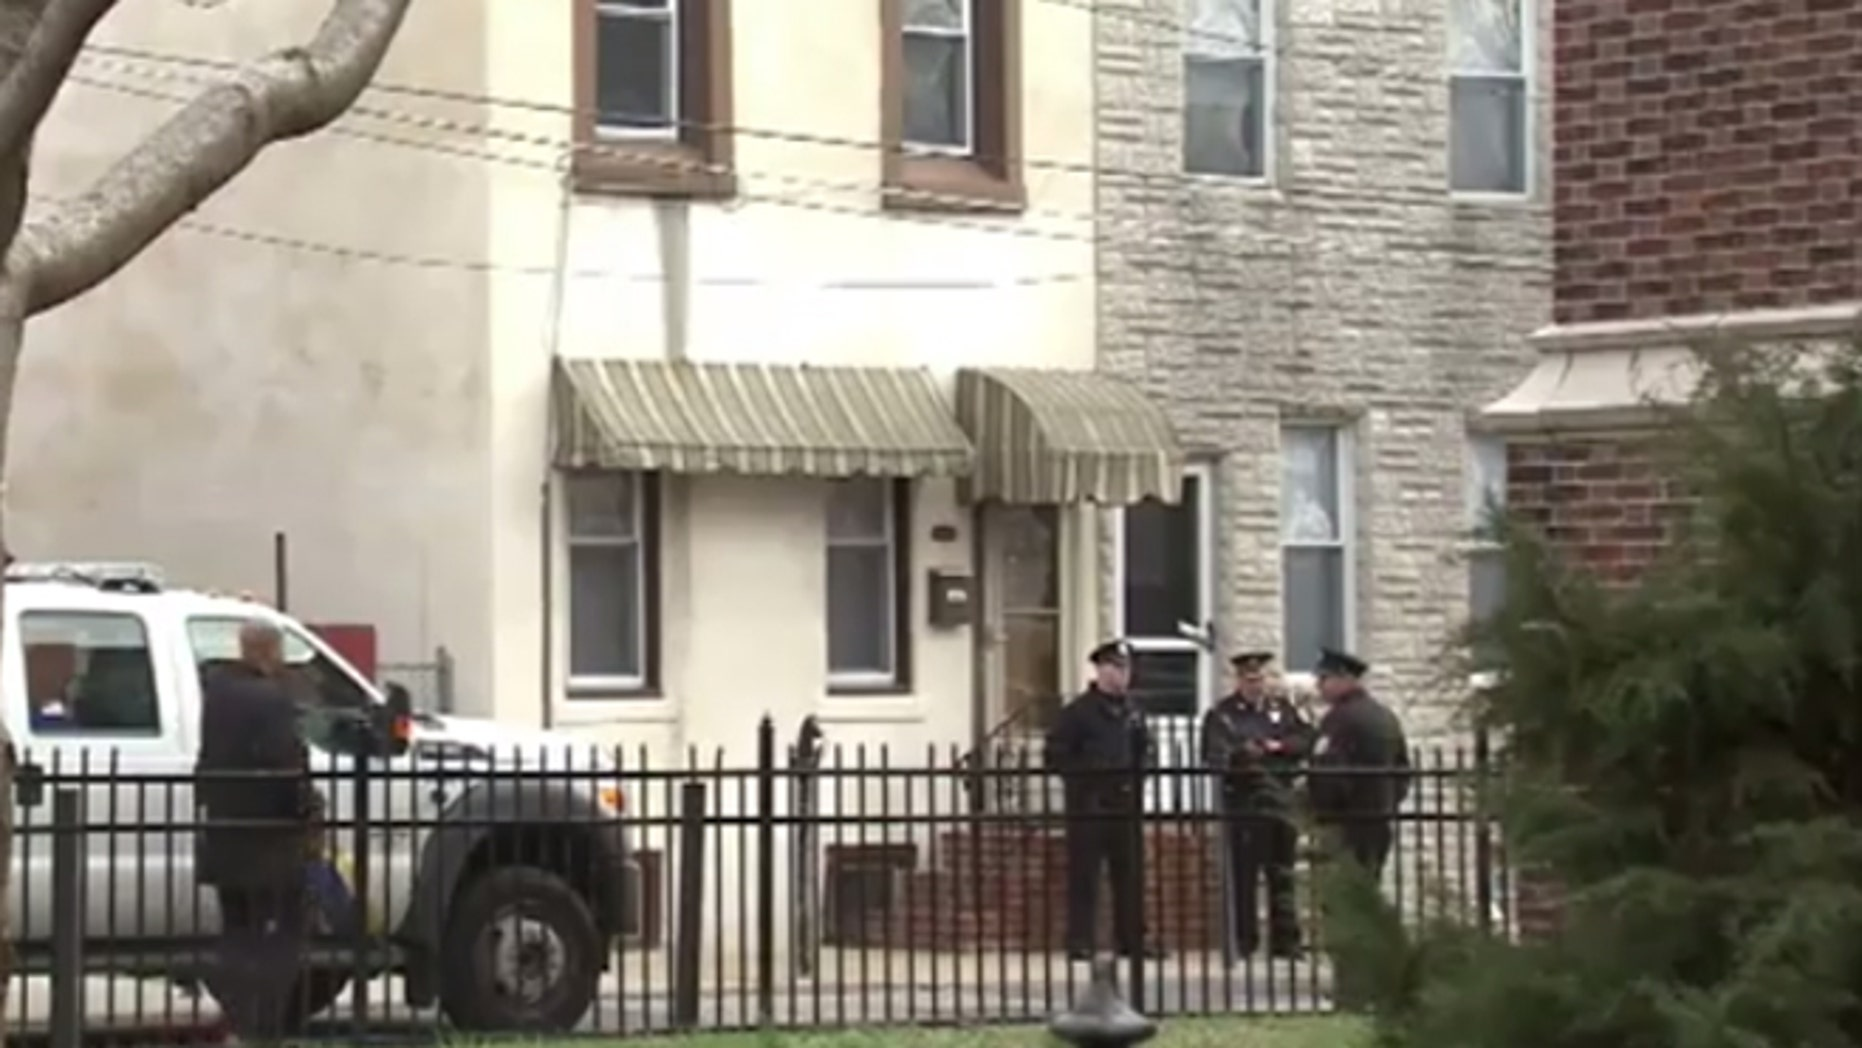 Feb. 26, 2018: A veteran Philadelphia police officer and a man were found dead at this home in the Port Richmond neighborhood of the city.